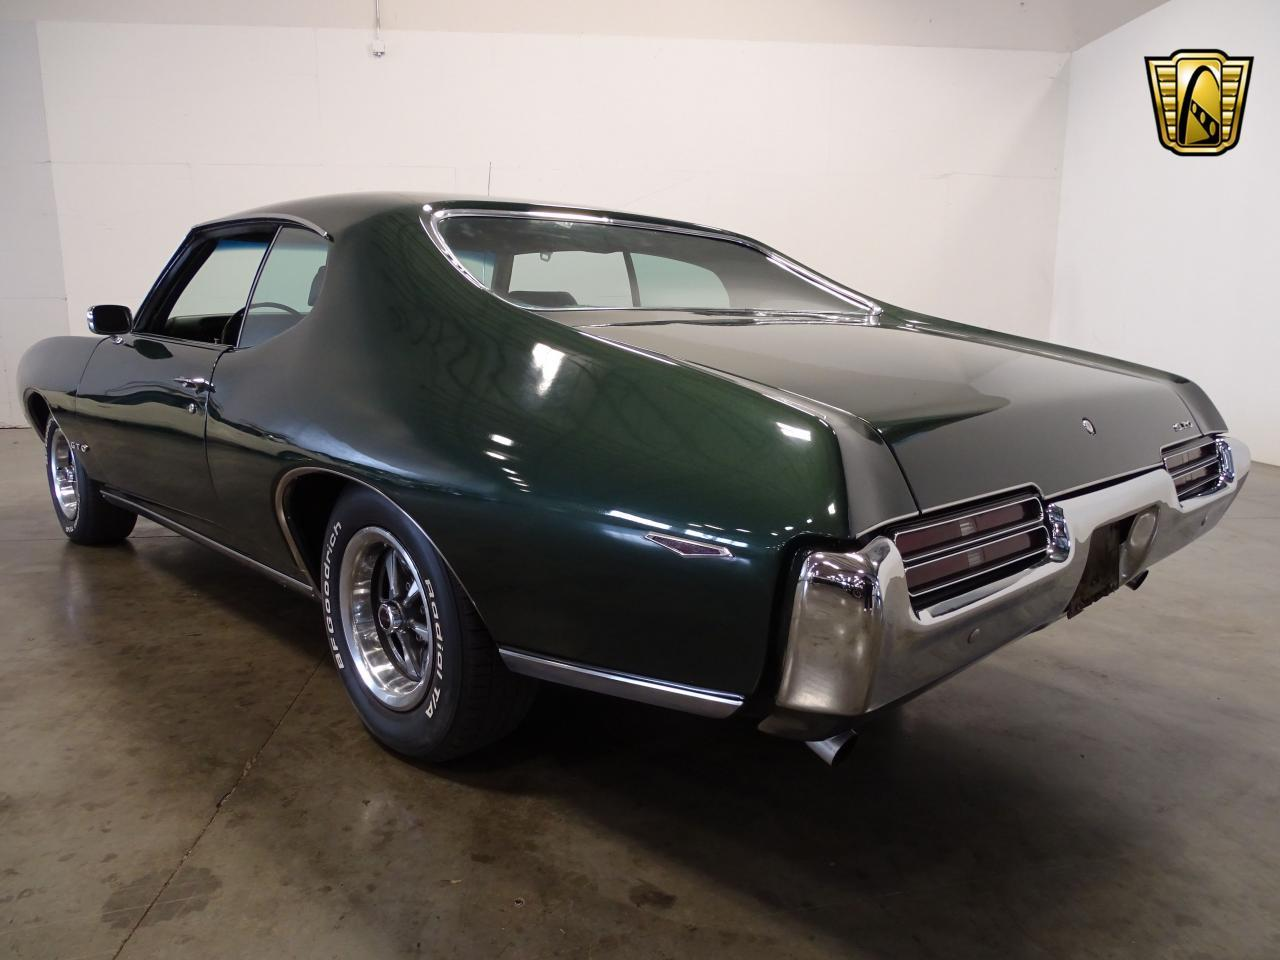 Large Picture of Classic '69 Pontiac GTO - $31,995.00 - OGZL